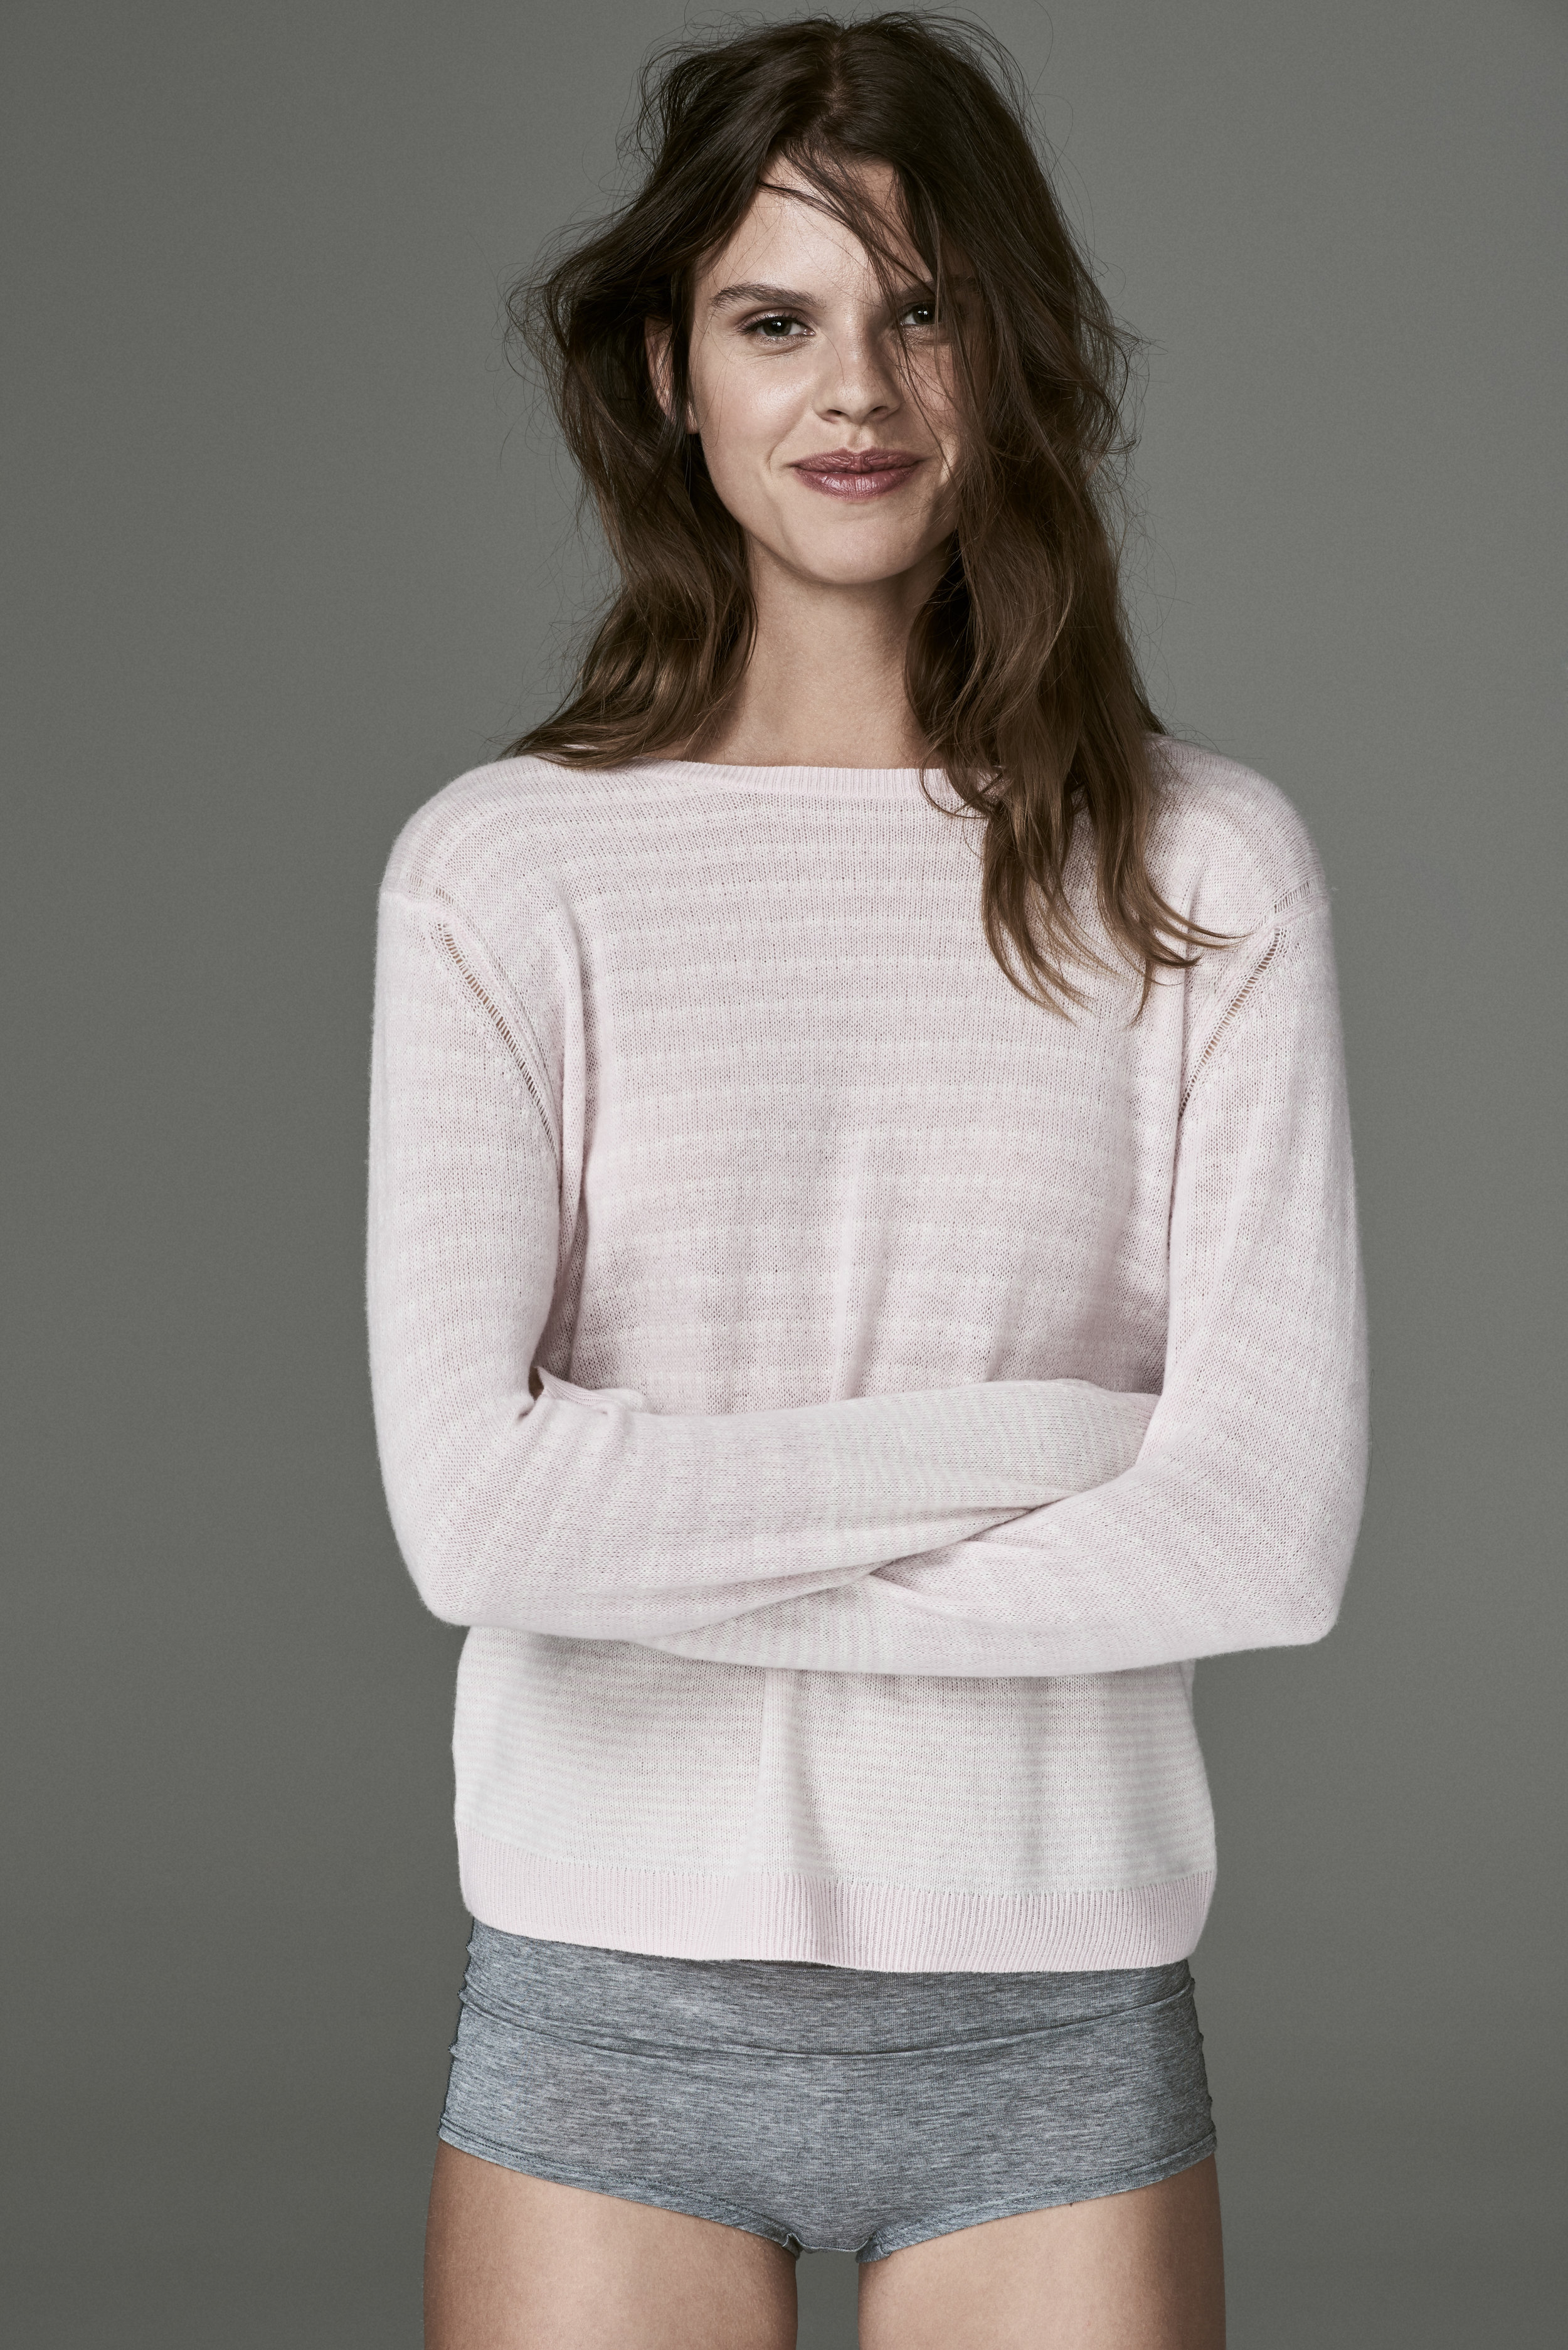 WHETHER YOU ARE ALWAYS ON-THE-GO OR RELAXING OFF DUTY, OUR EXCLUSIVE PINK LEMONAID KNIT SWEATER IS THE EPITOME OF LUXE LOUNGEWEAR. PANTS OPTIONAL OF COURSE. CLICK FOR DETAILS.